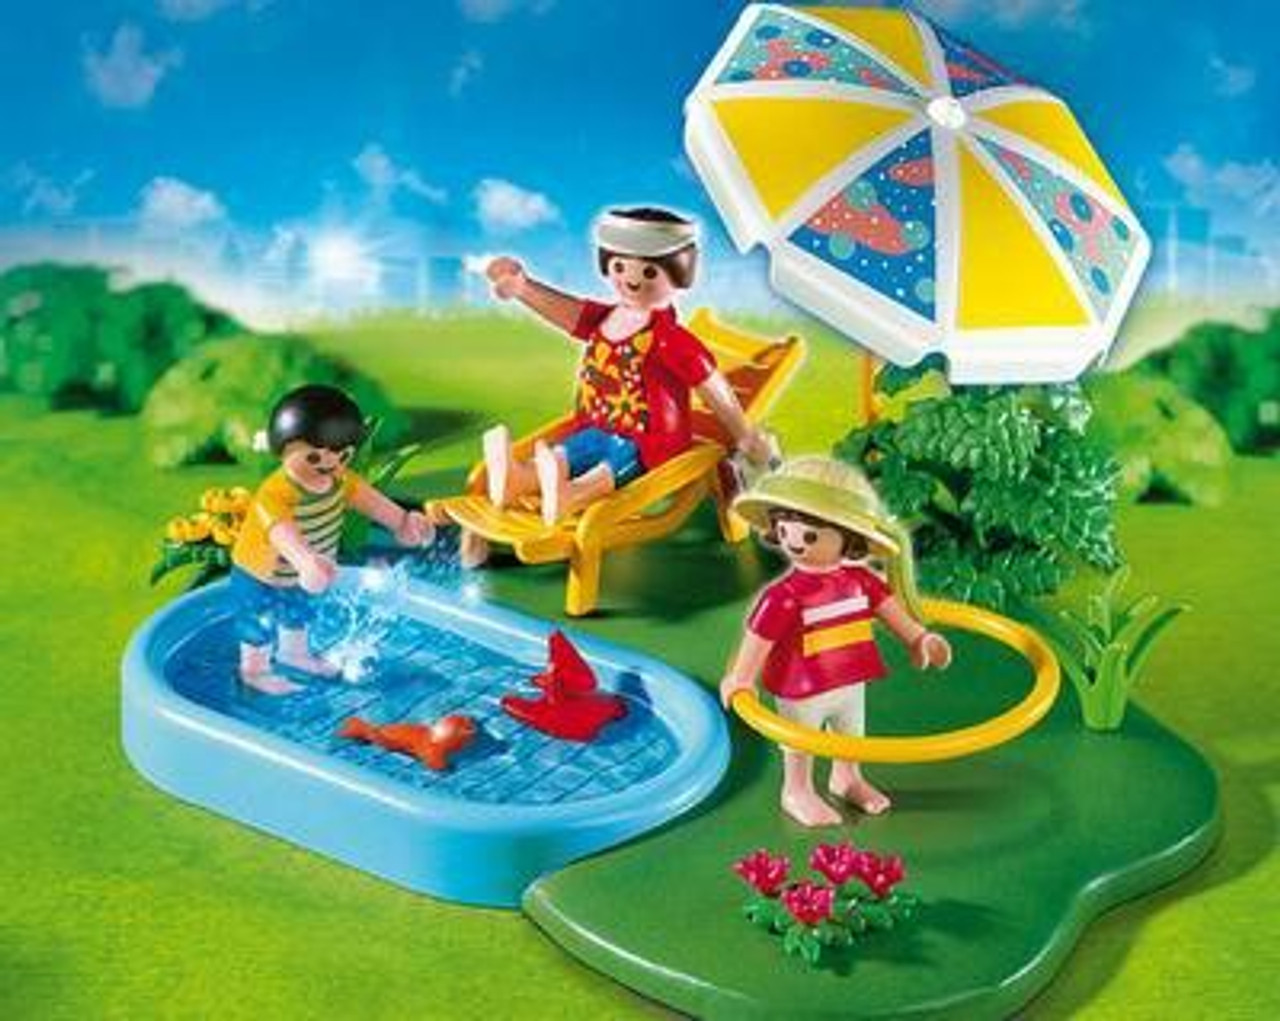 Playmobil Vacation & Leisure Wading Pool Compact Set Set #4140